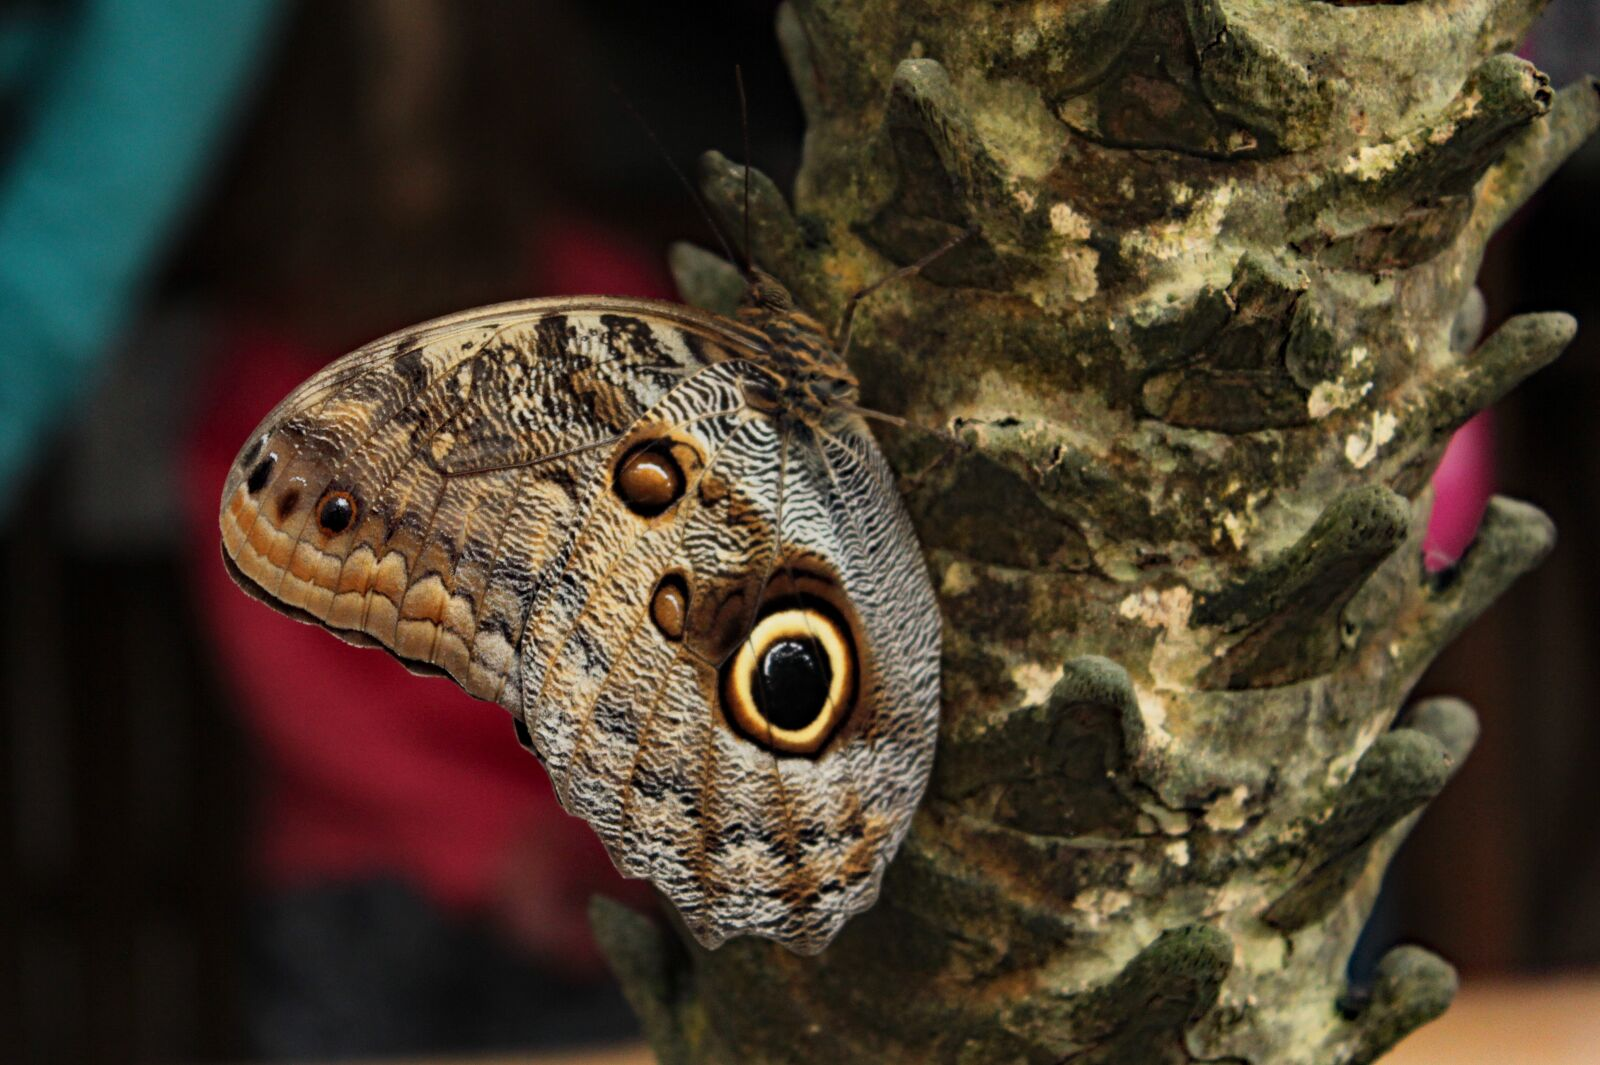 """Canon EOS 600D (Rebel EOS T3i / EOS Kiss X5) sample photo. """"Nature, butterfly, insect"""" photography"""